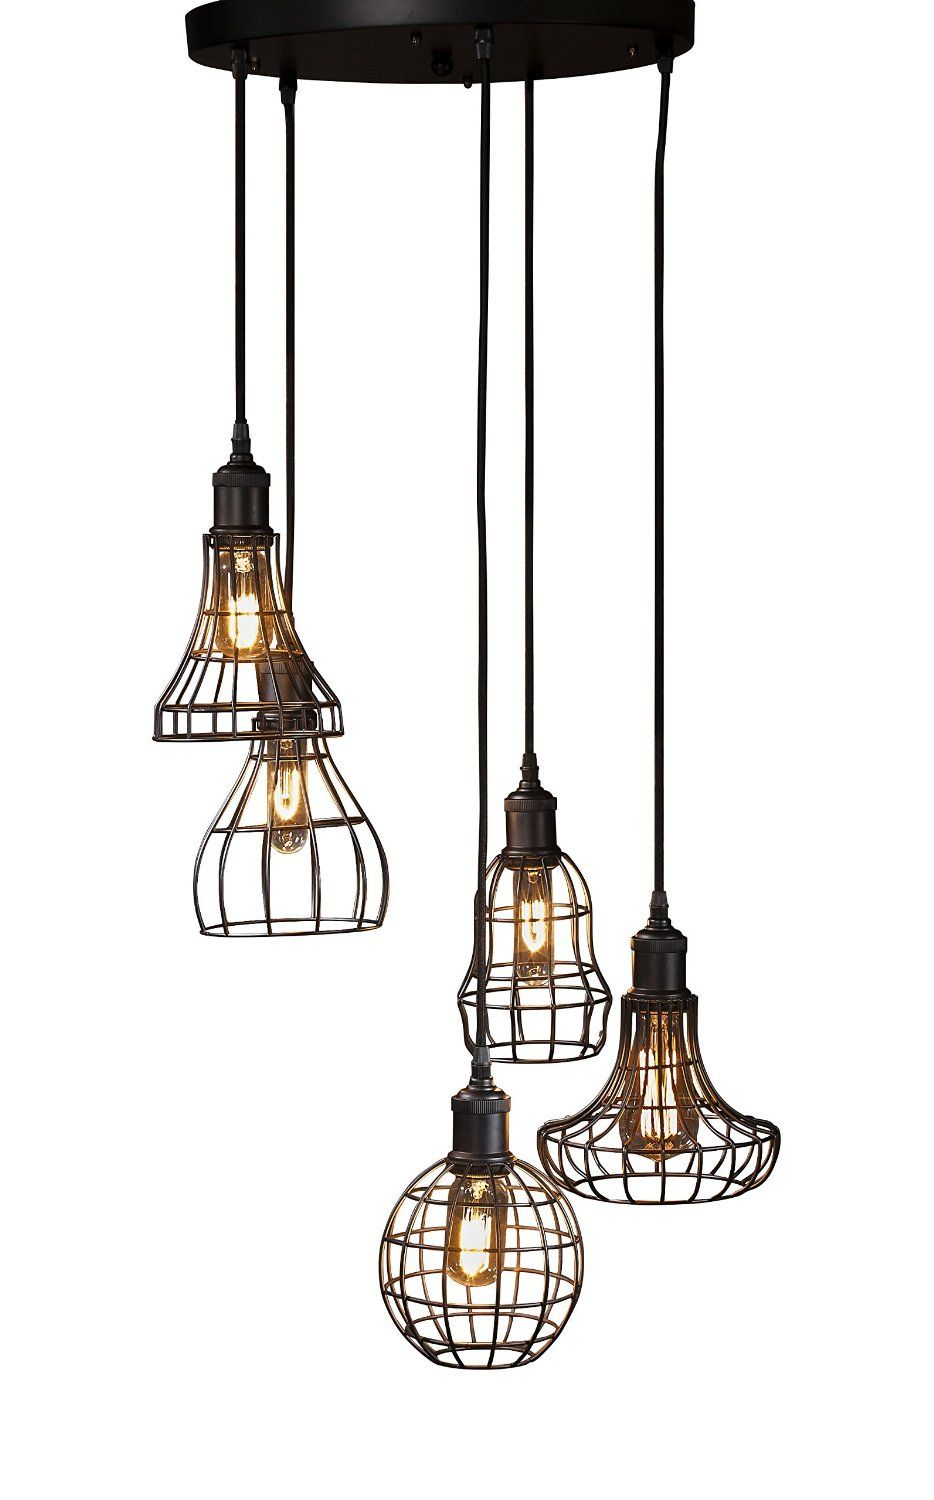 Gallery Direct 42-inch Rostock Cluster Light: Amazon.co.uk: Lighting ...